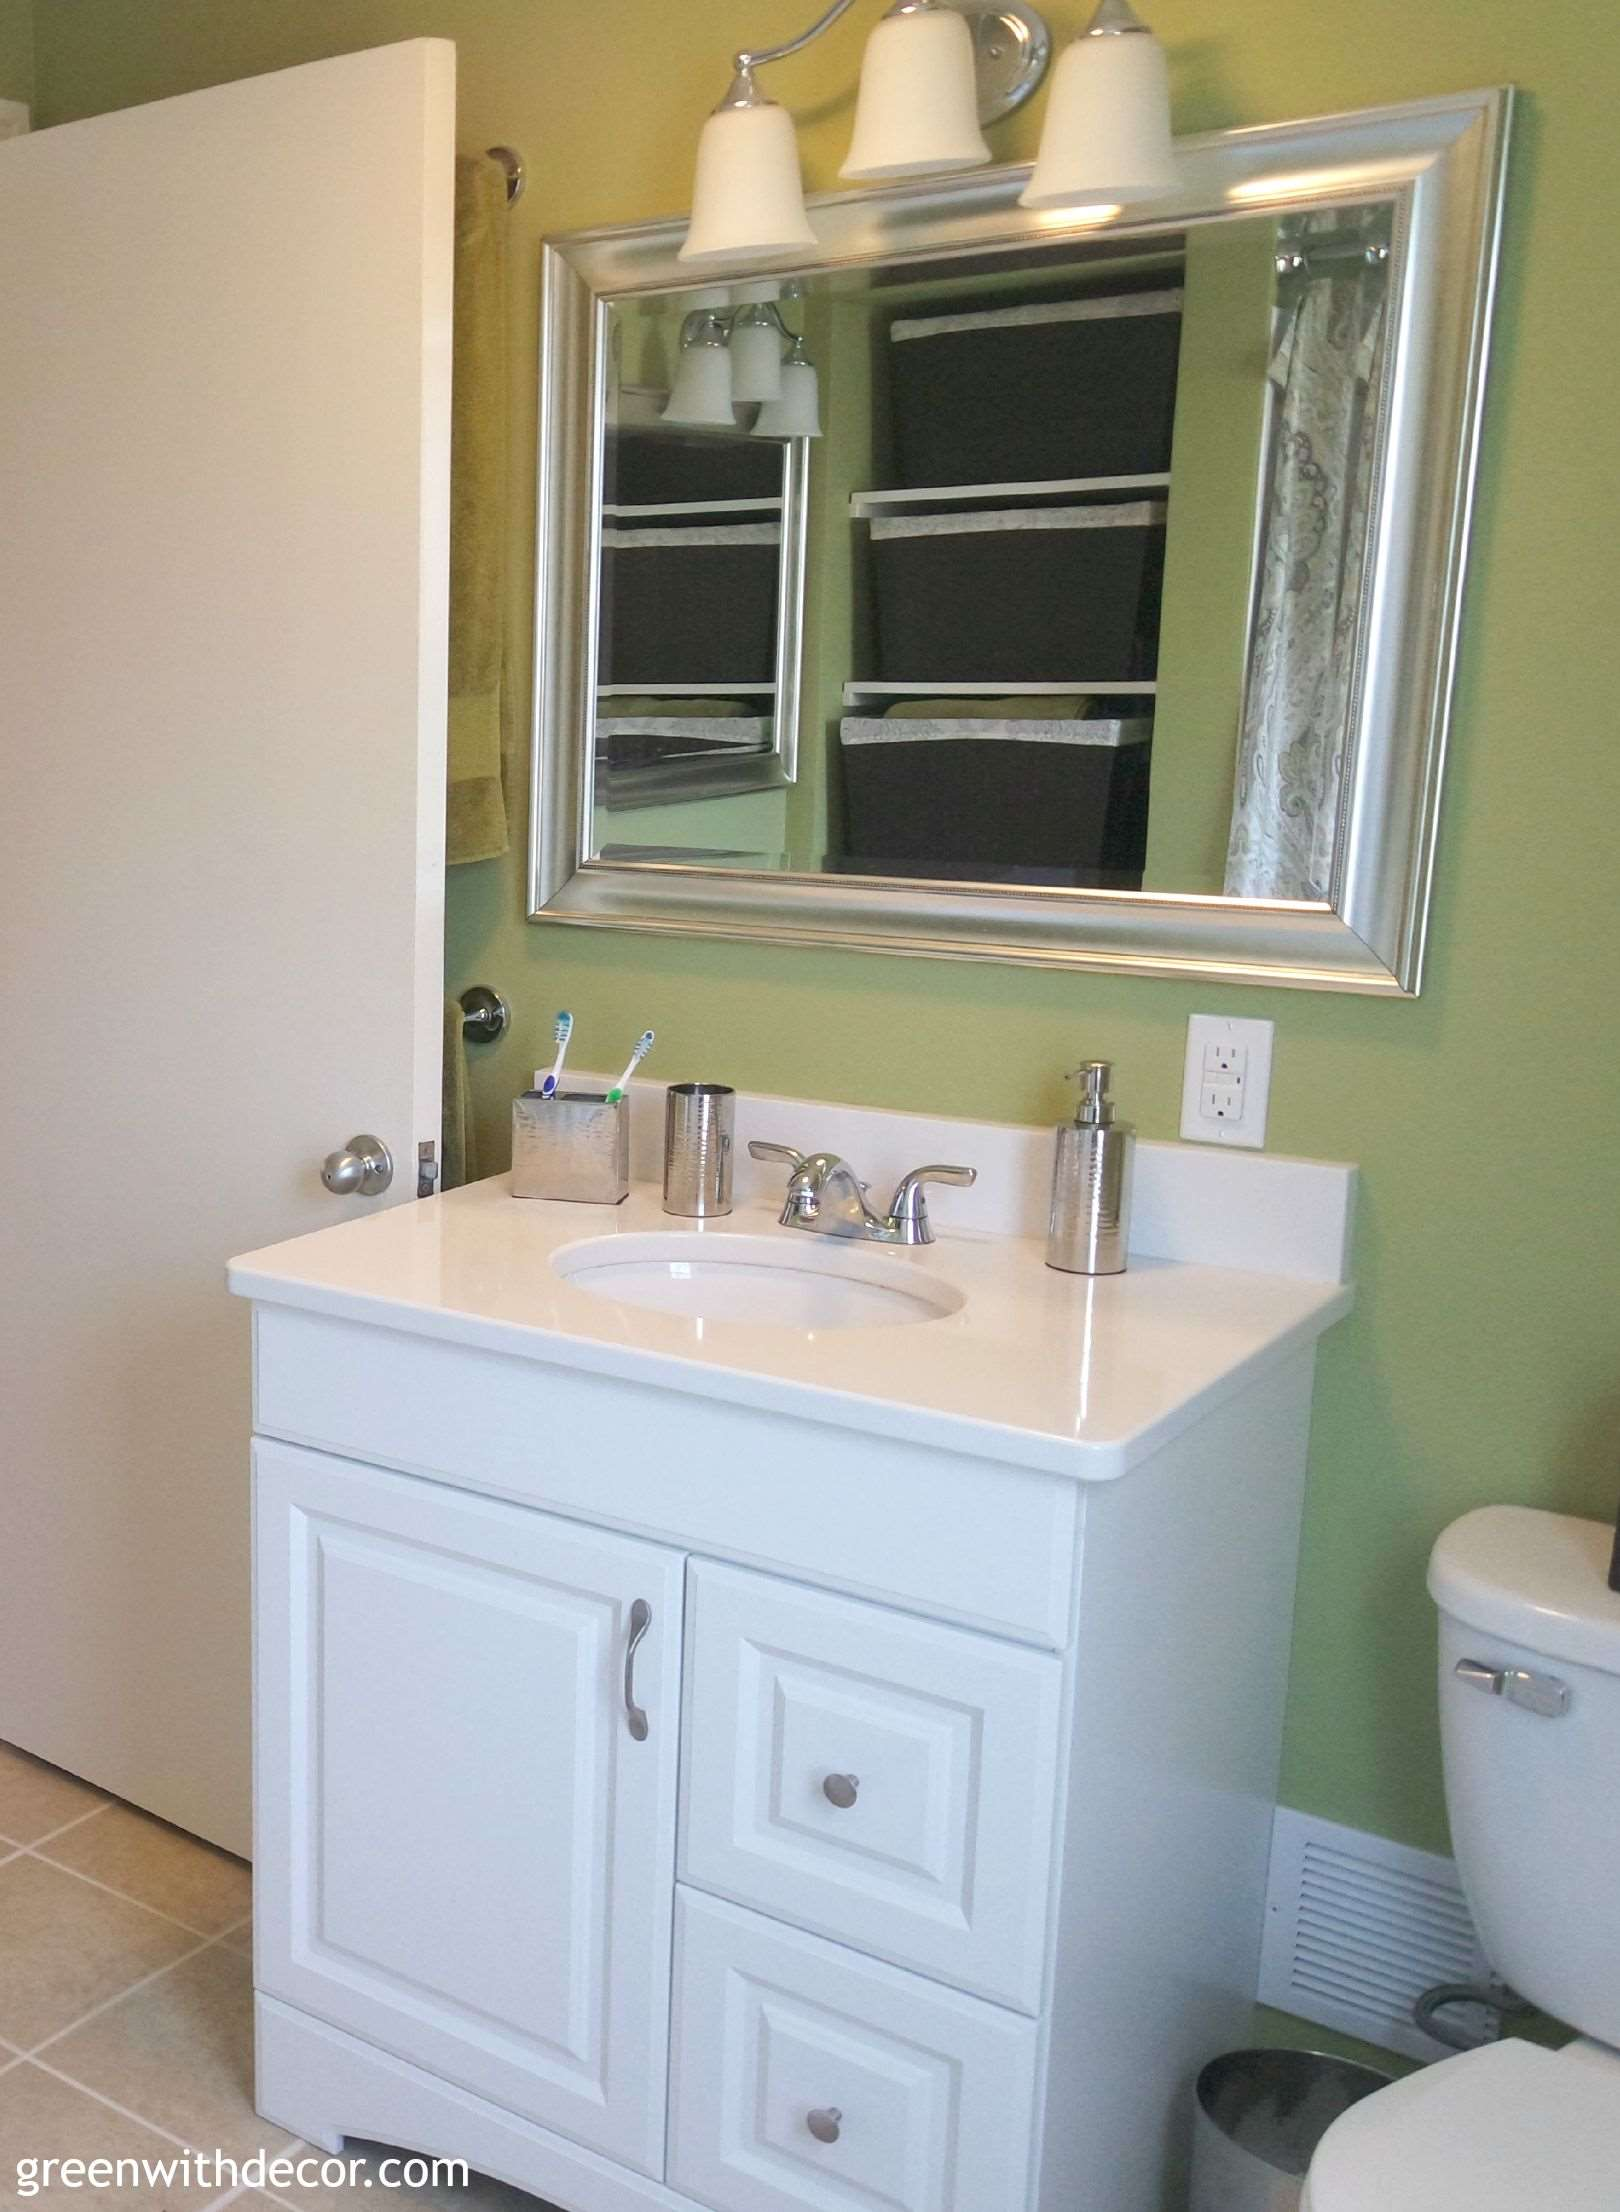 Green with decor buying bathroom vanities - Bathroom vanities 32 inches wide ...